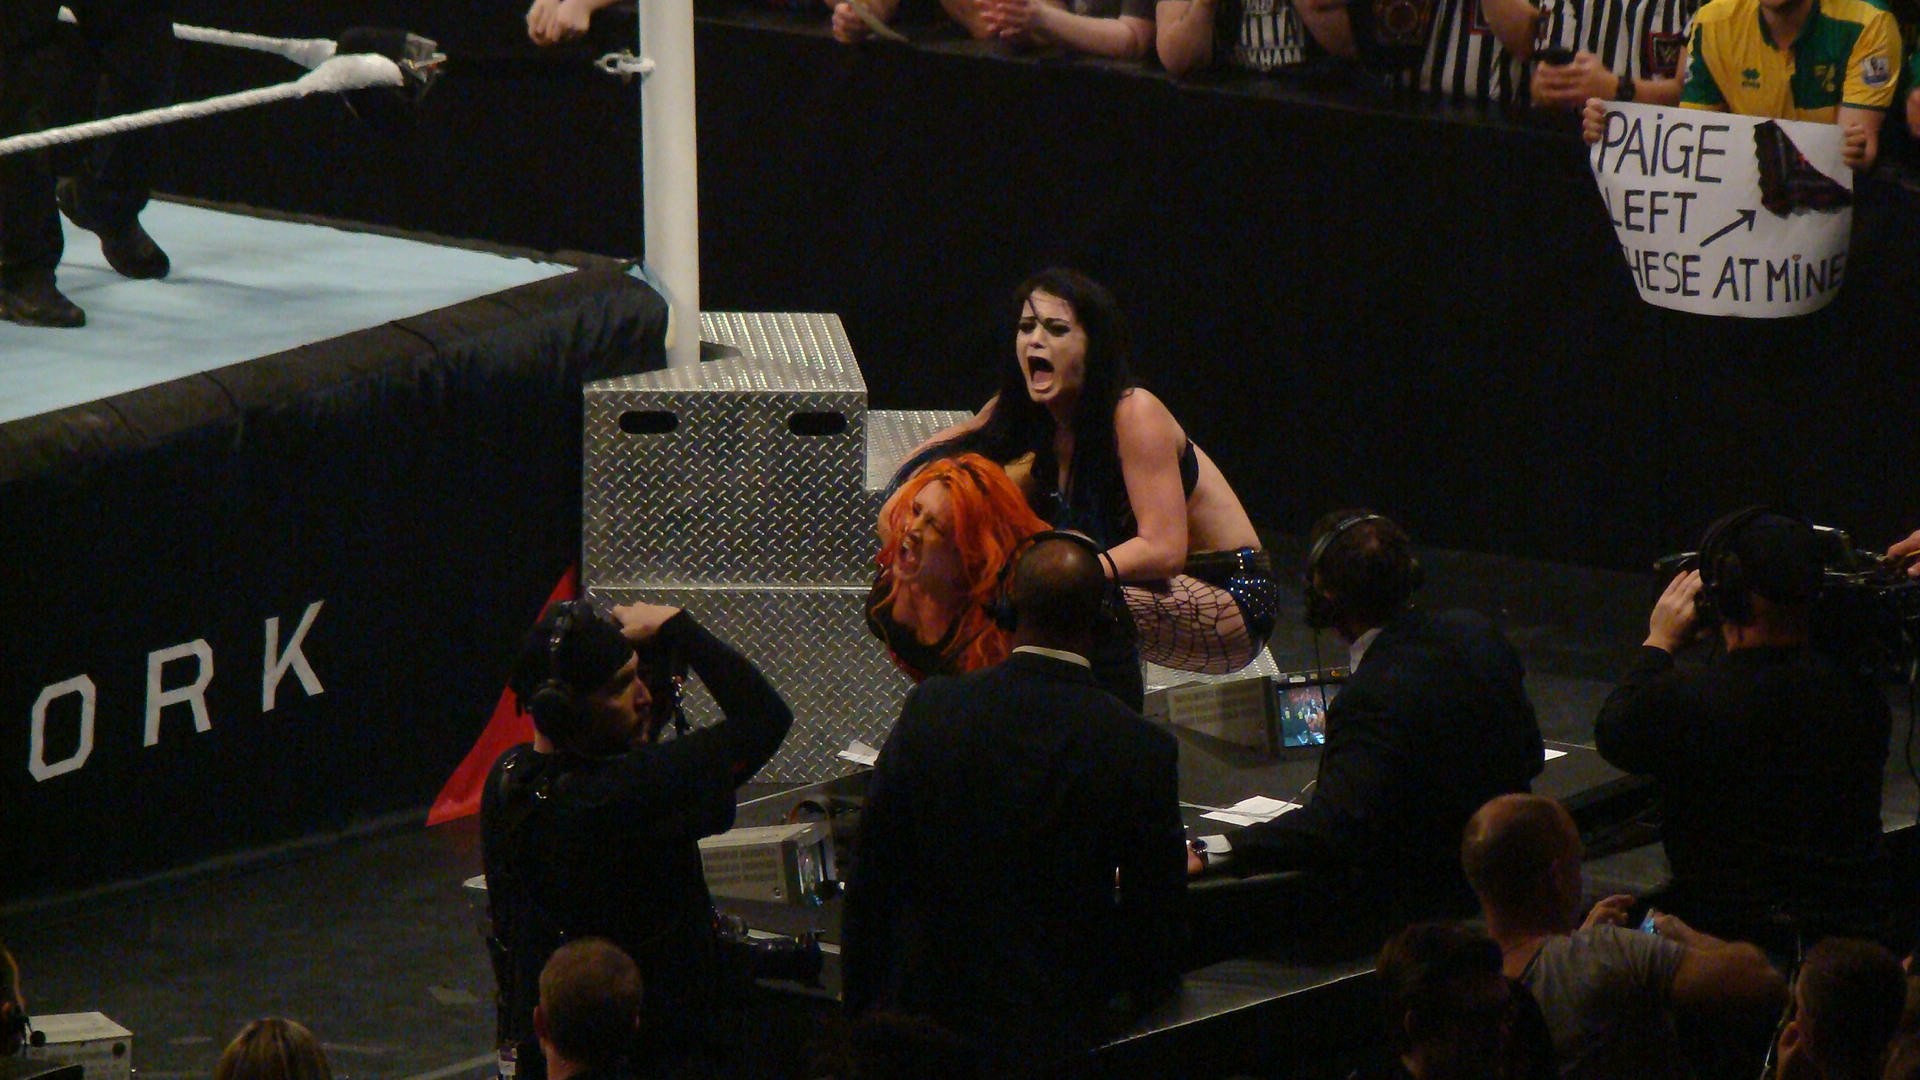 Paige and Becky Lynch